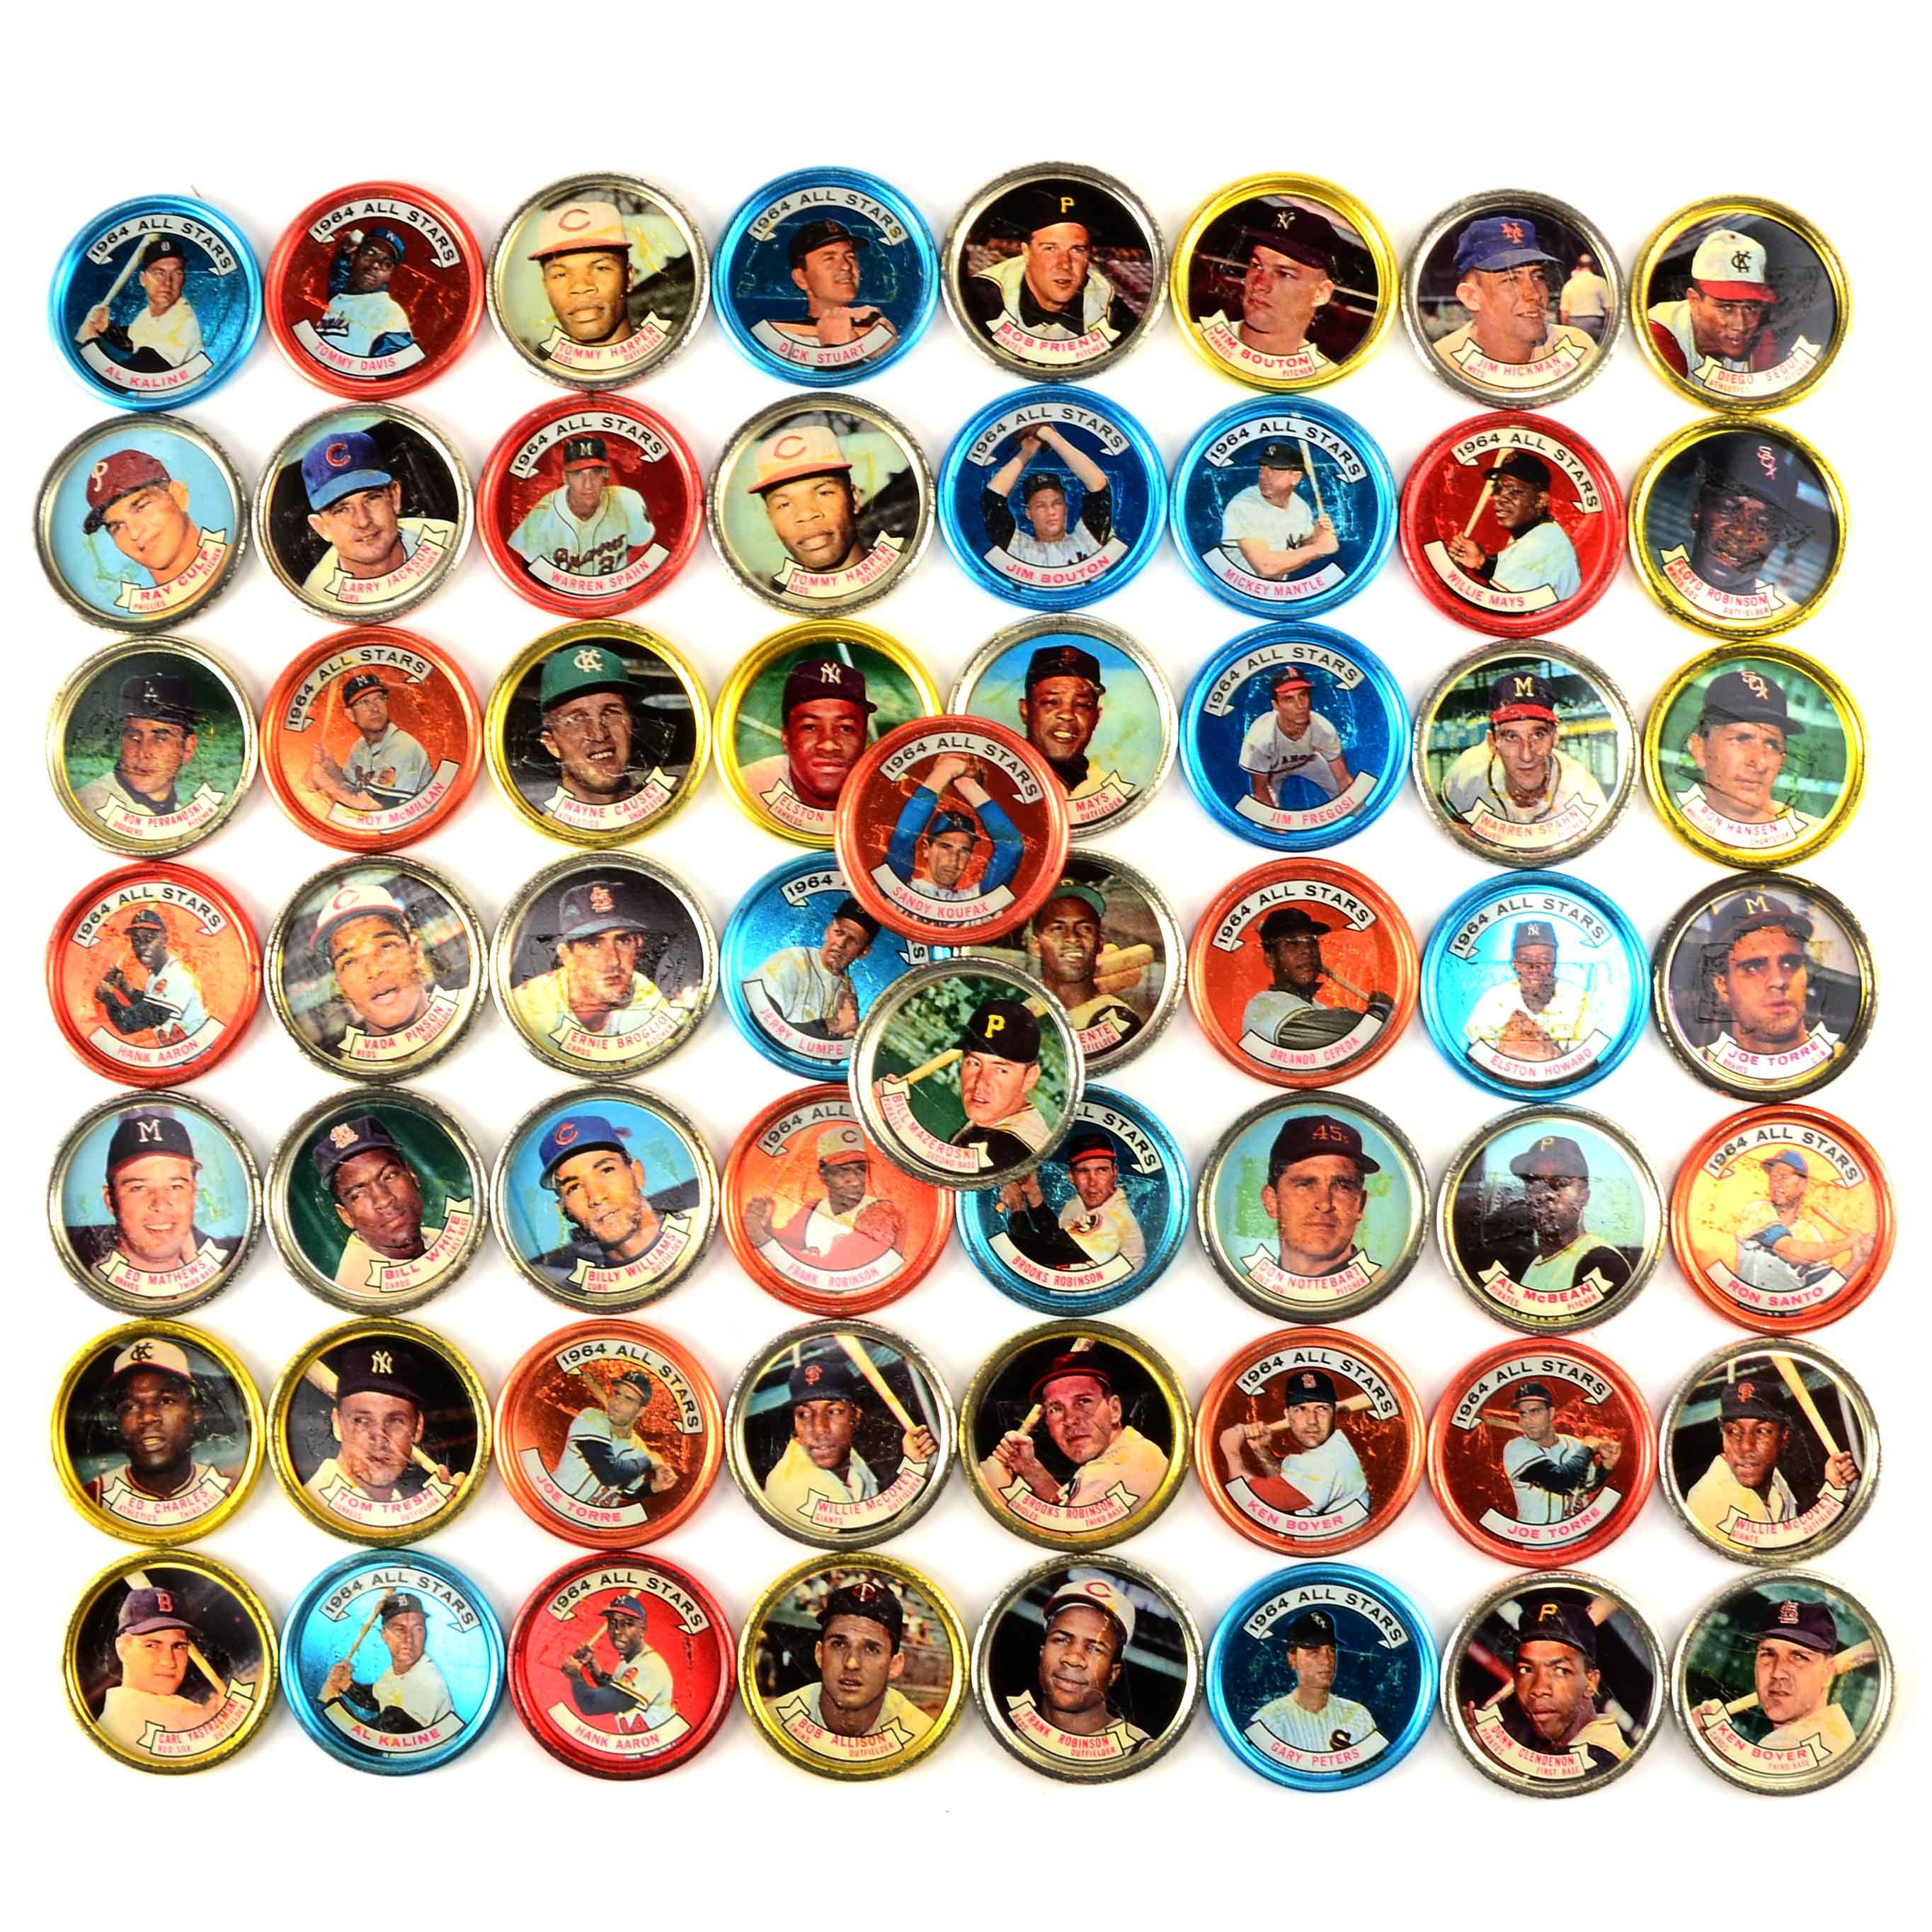 Fifty-Eight 1964-1965 Topps Baseball Player Photo Coins